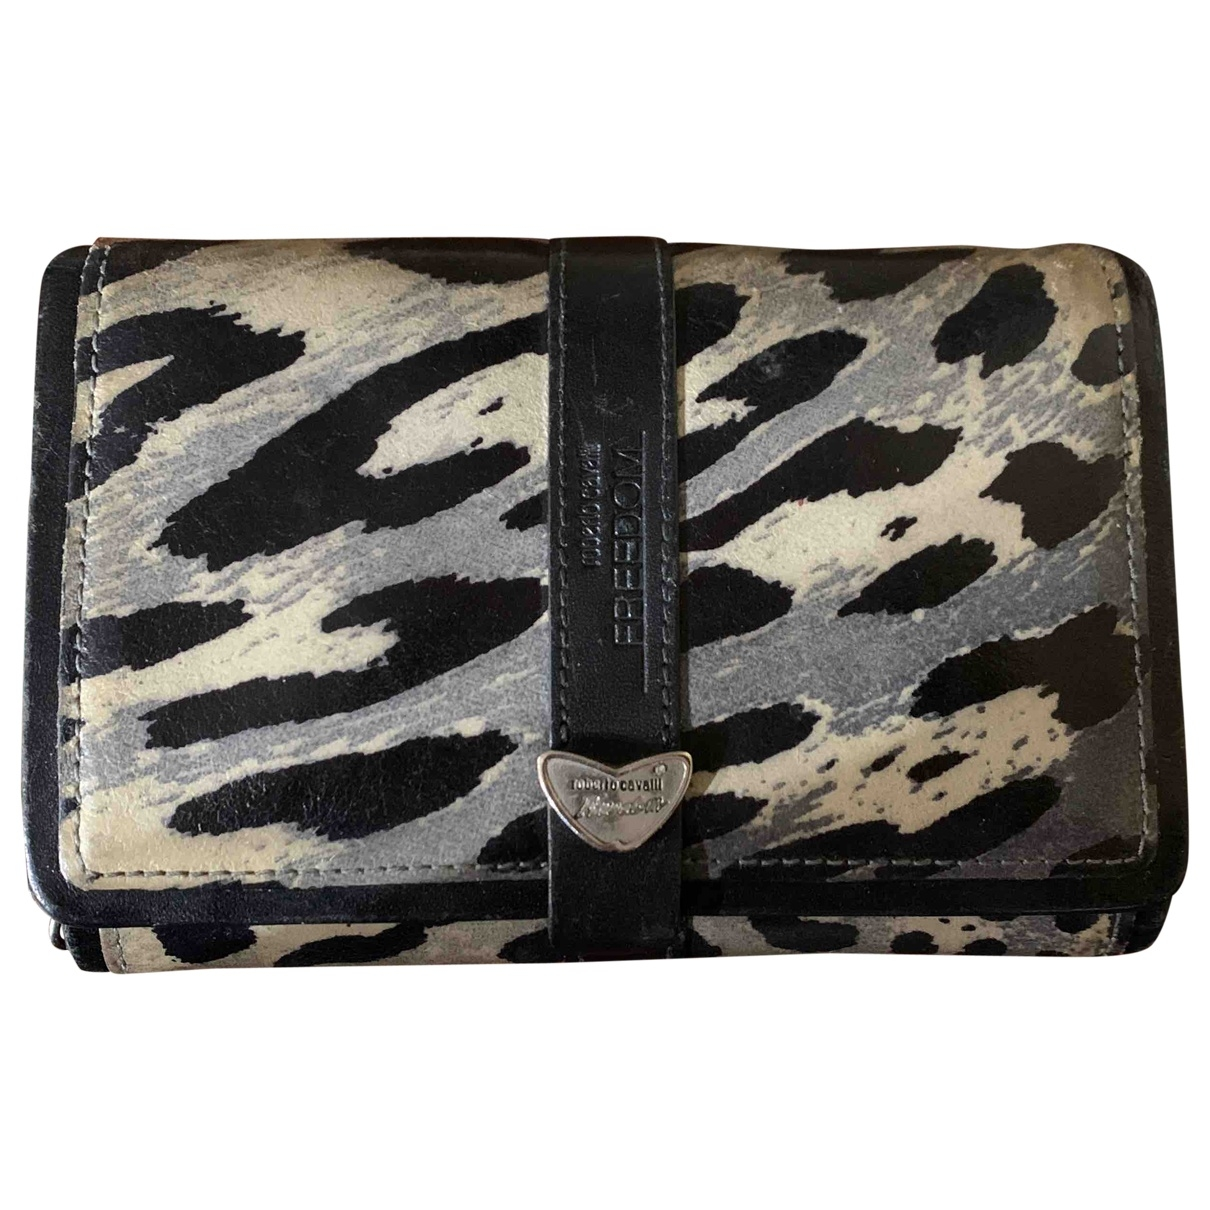 Roberto Cavalli \N Multicolour Leather wallet for Women \N